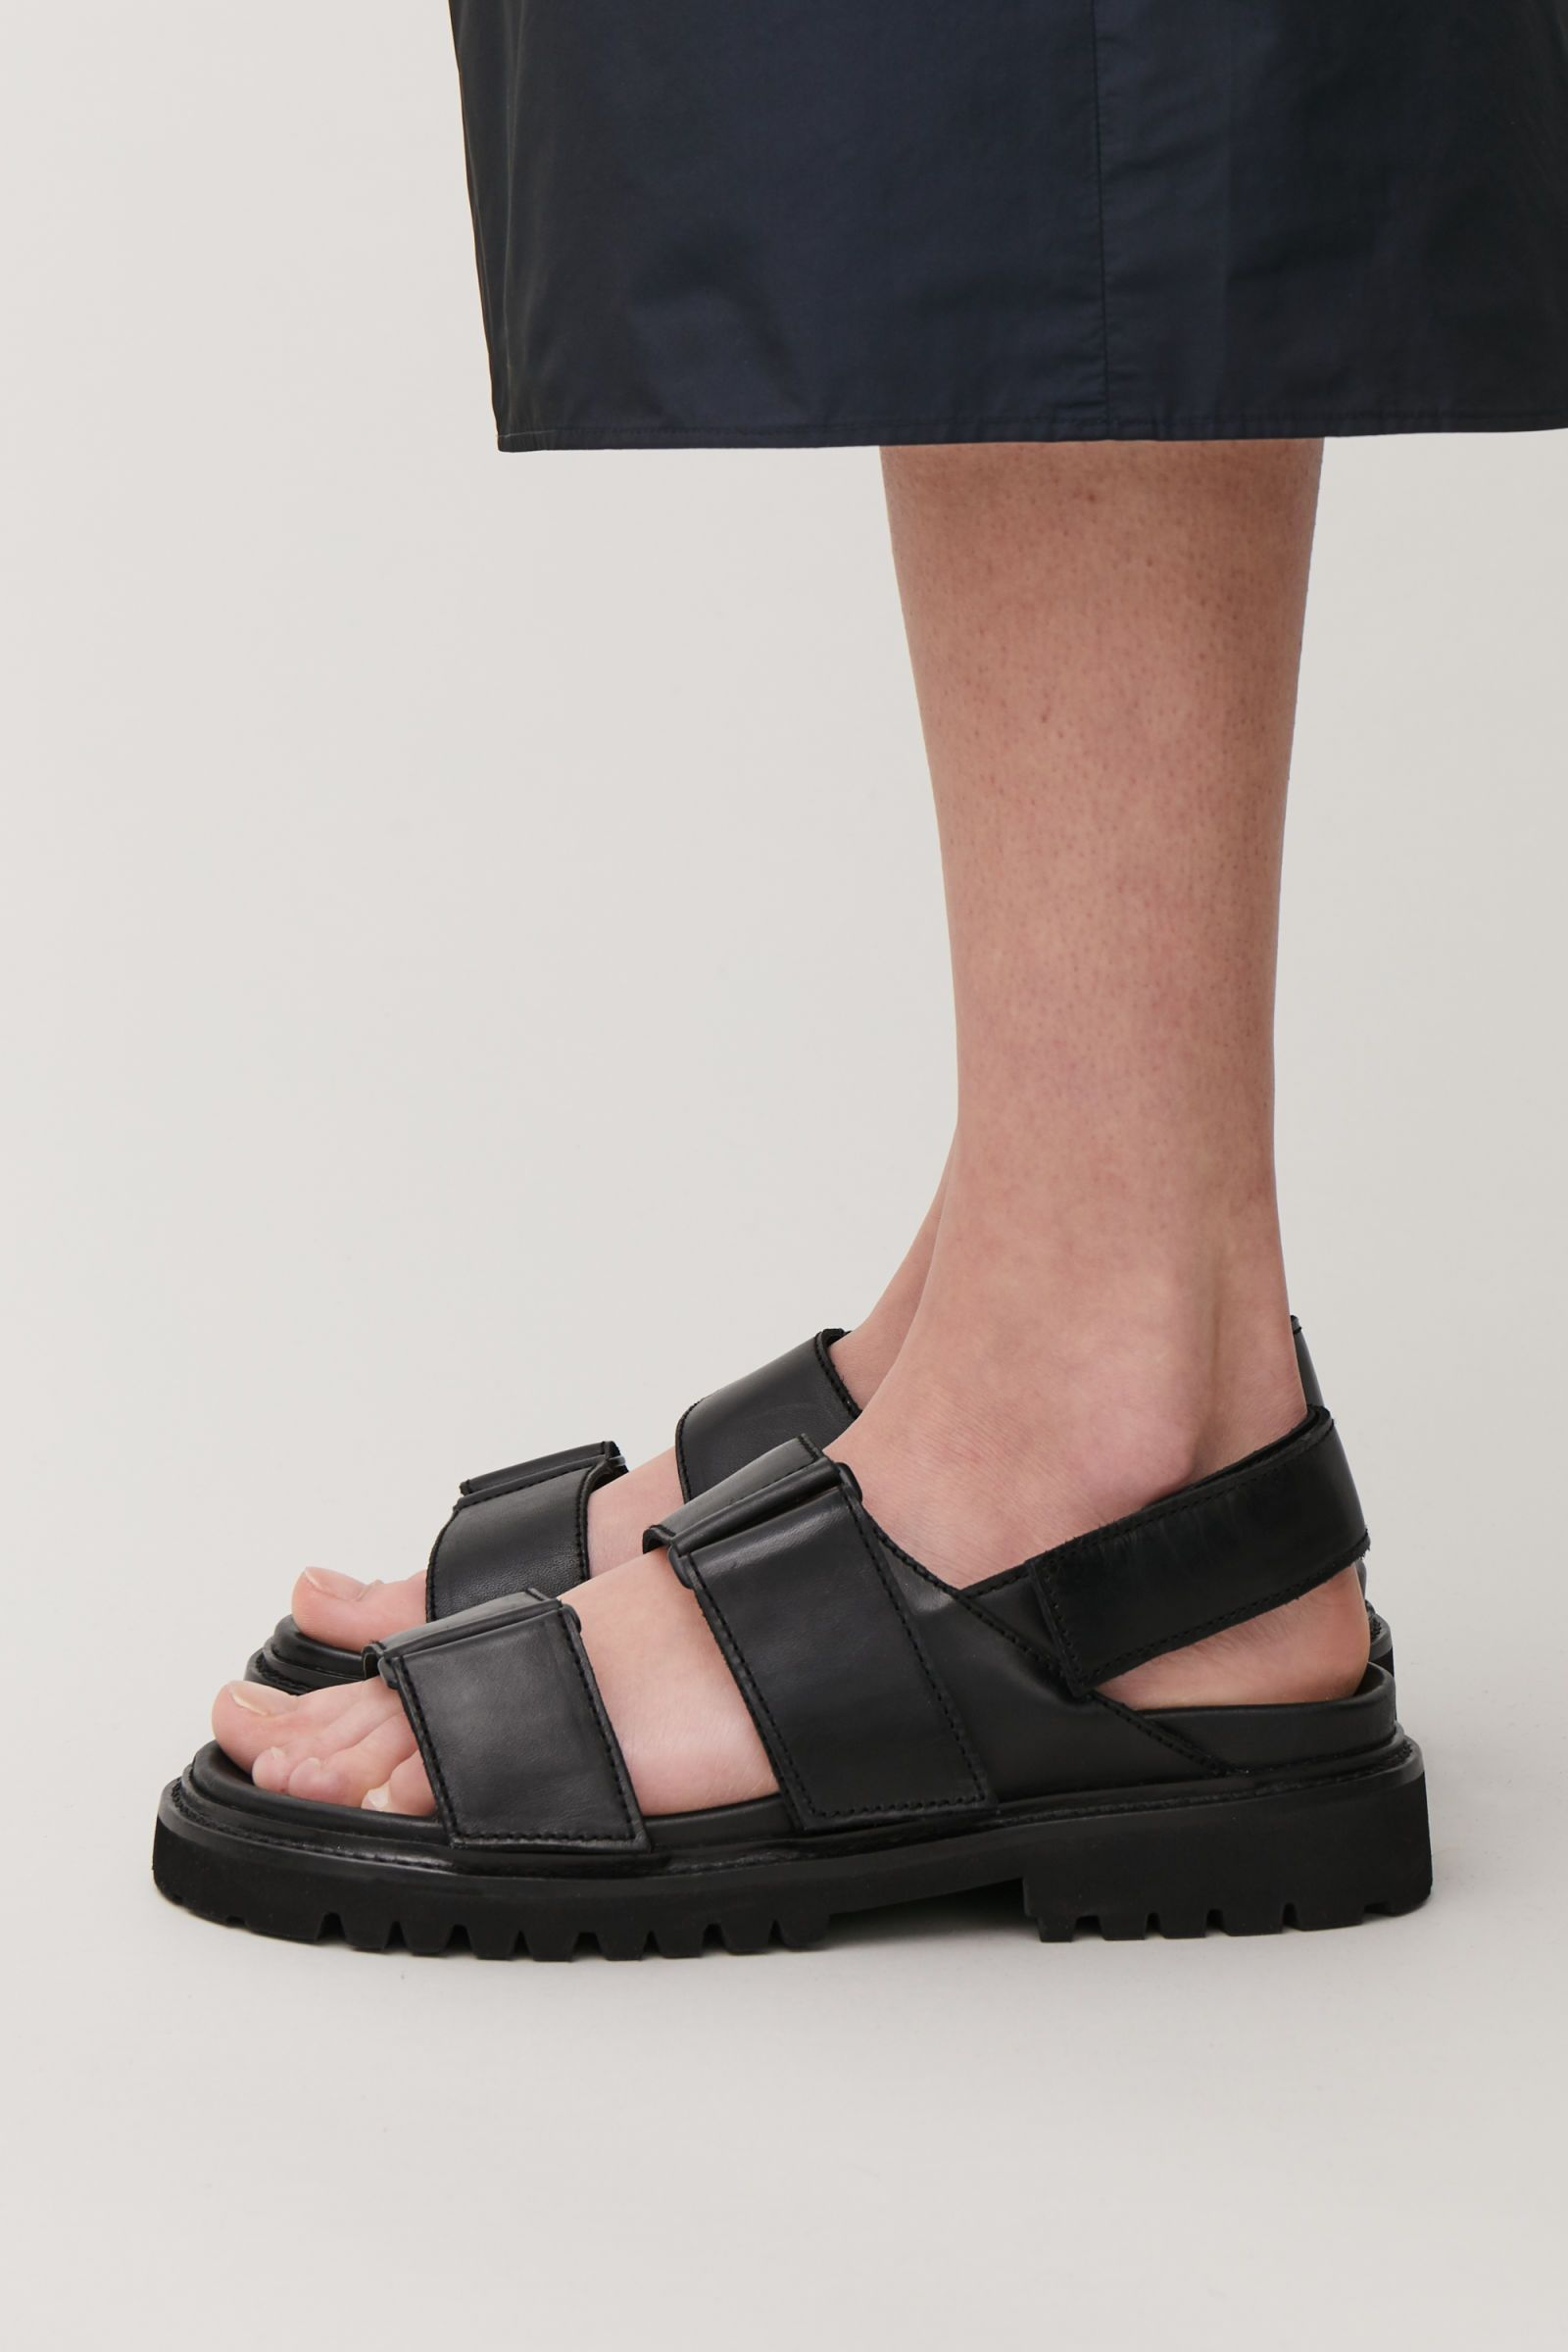 COS | Chunky leather sandals | Leather sandals, Shoes, Sandals